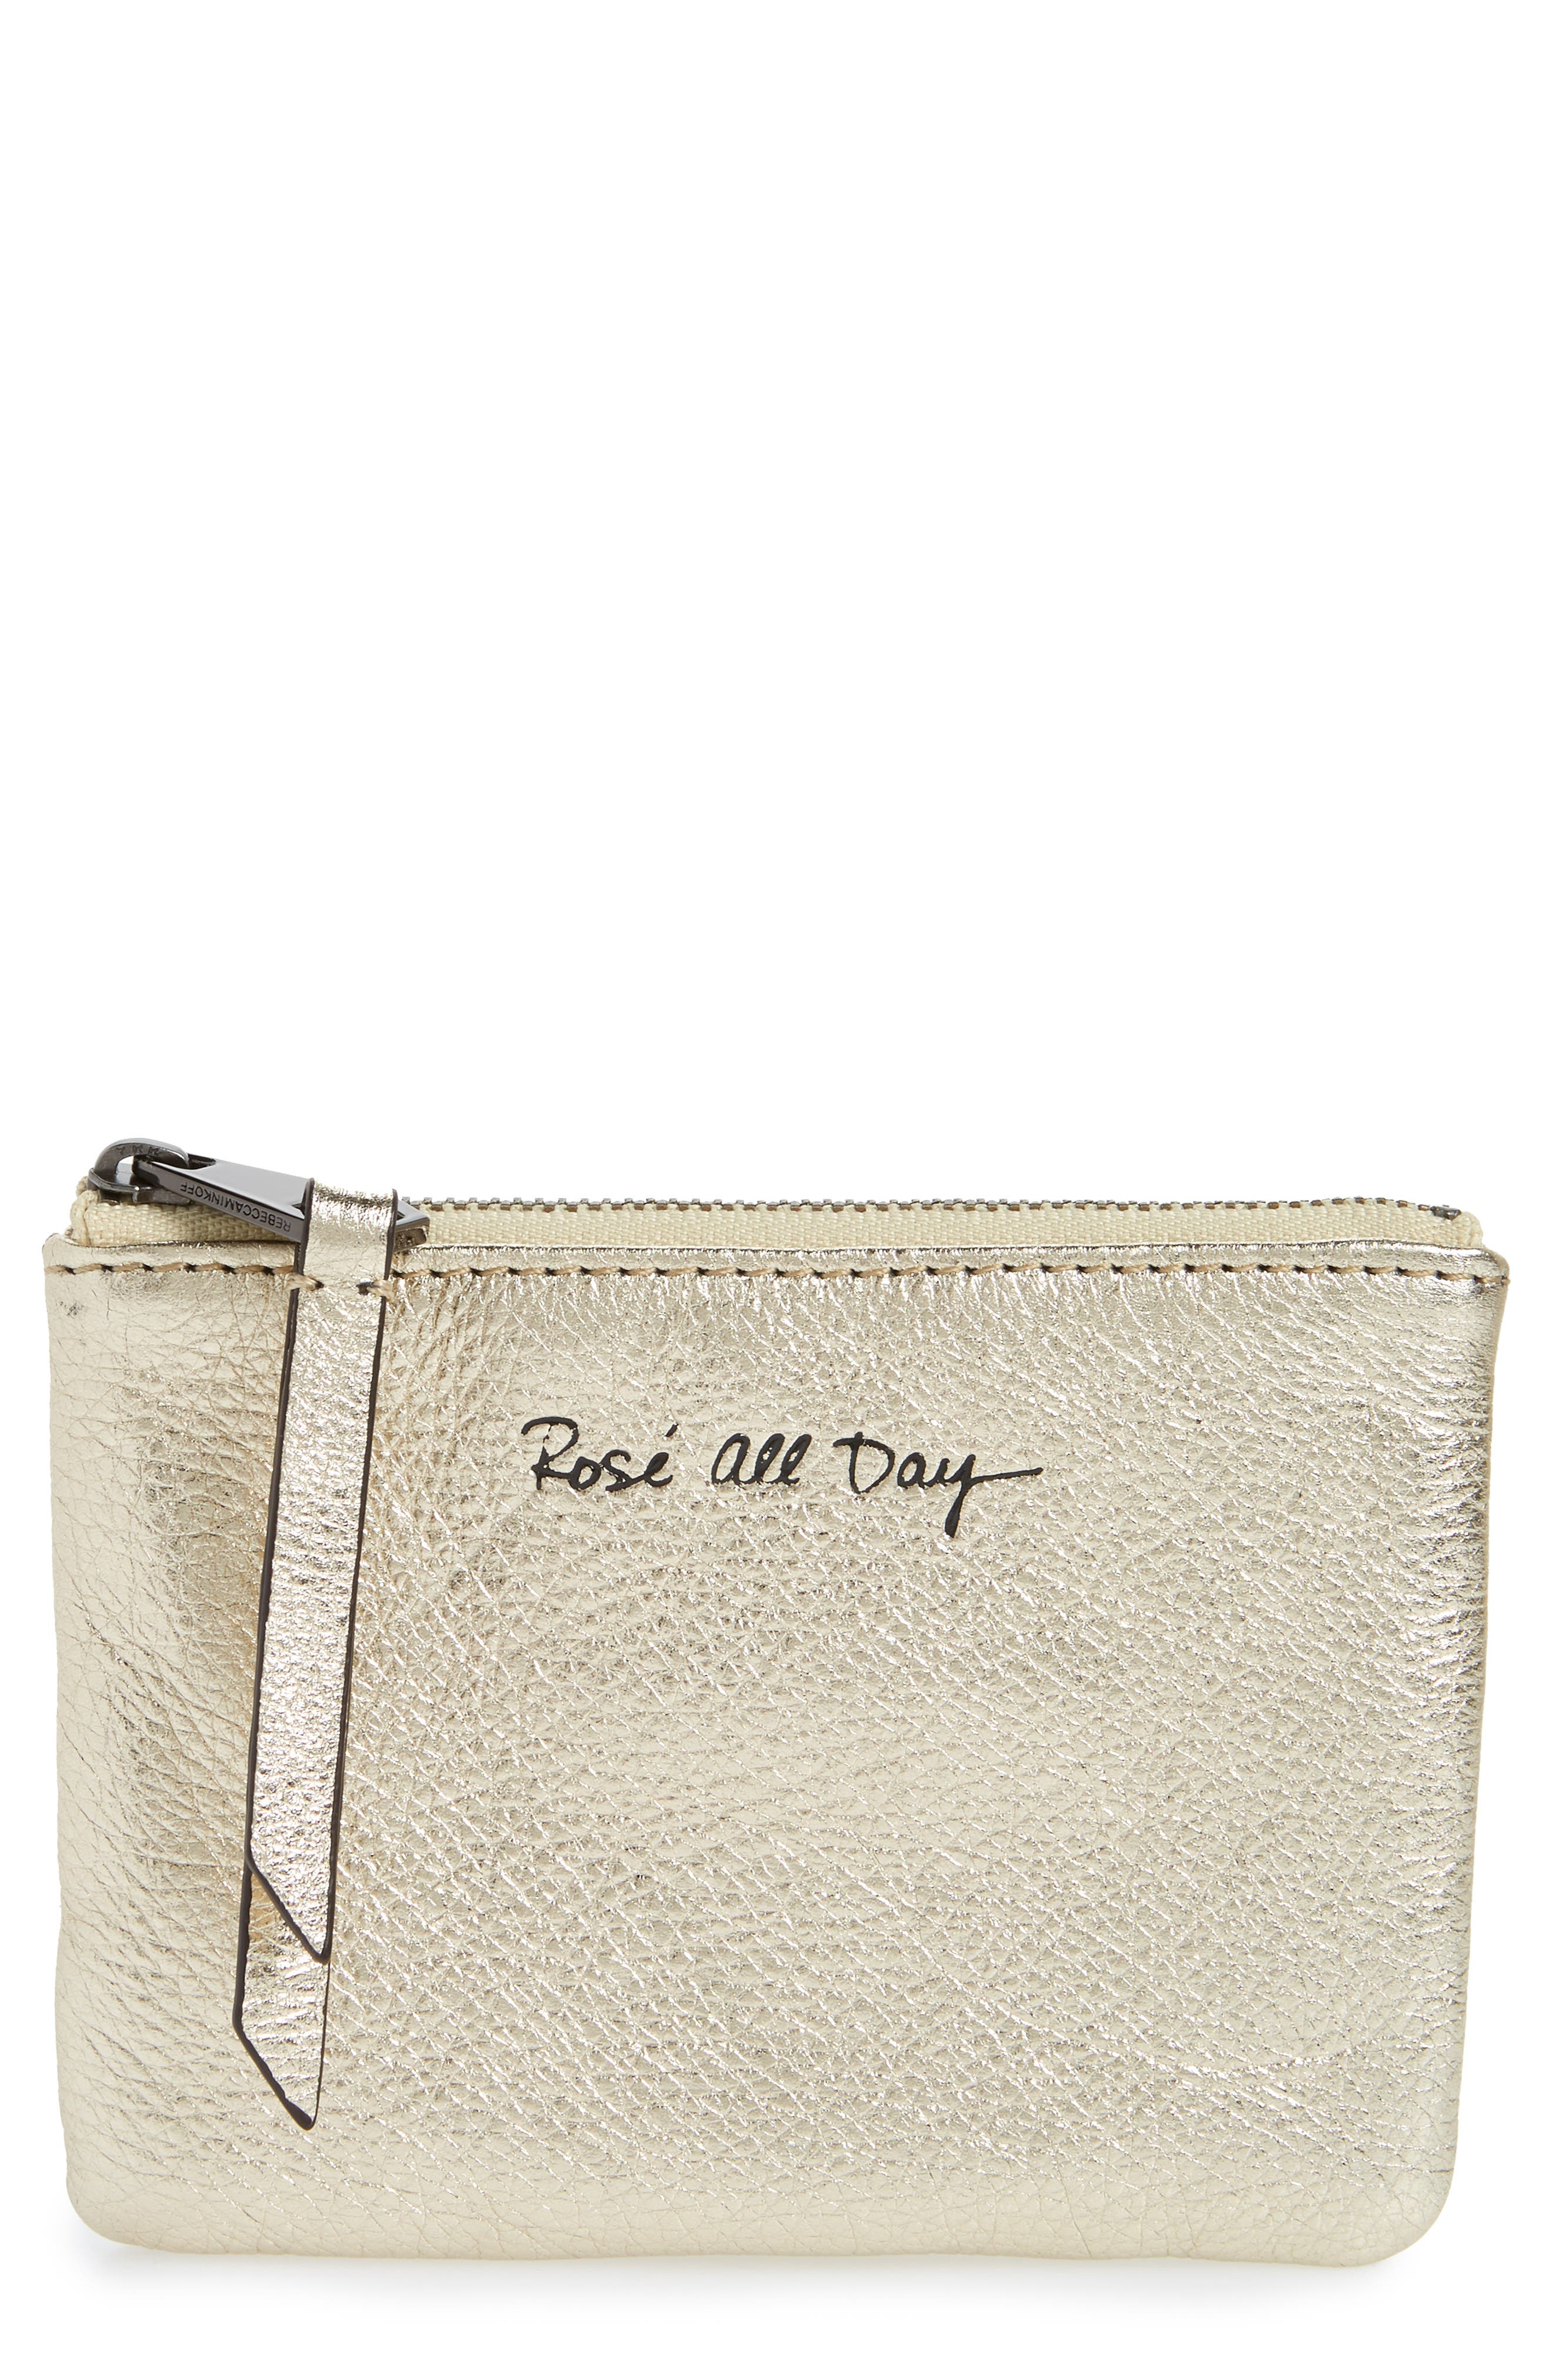 Betty Rosé All Day Leather Zip Pouch,                             Main thumbnail 1, color,                             710